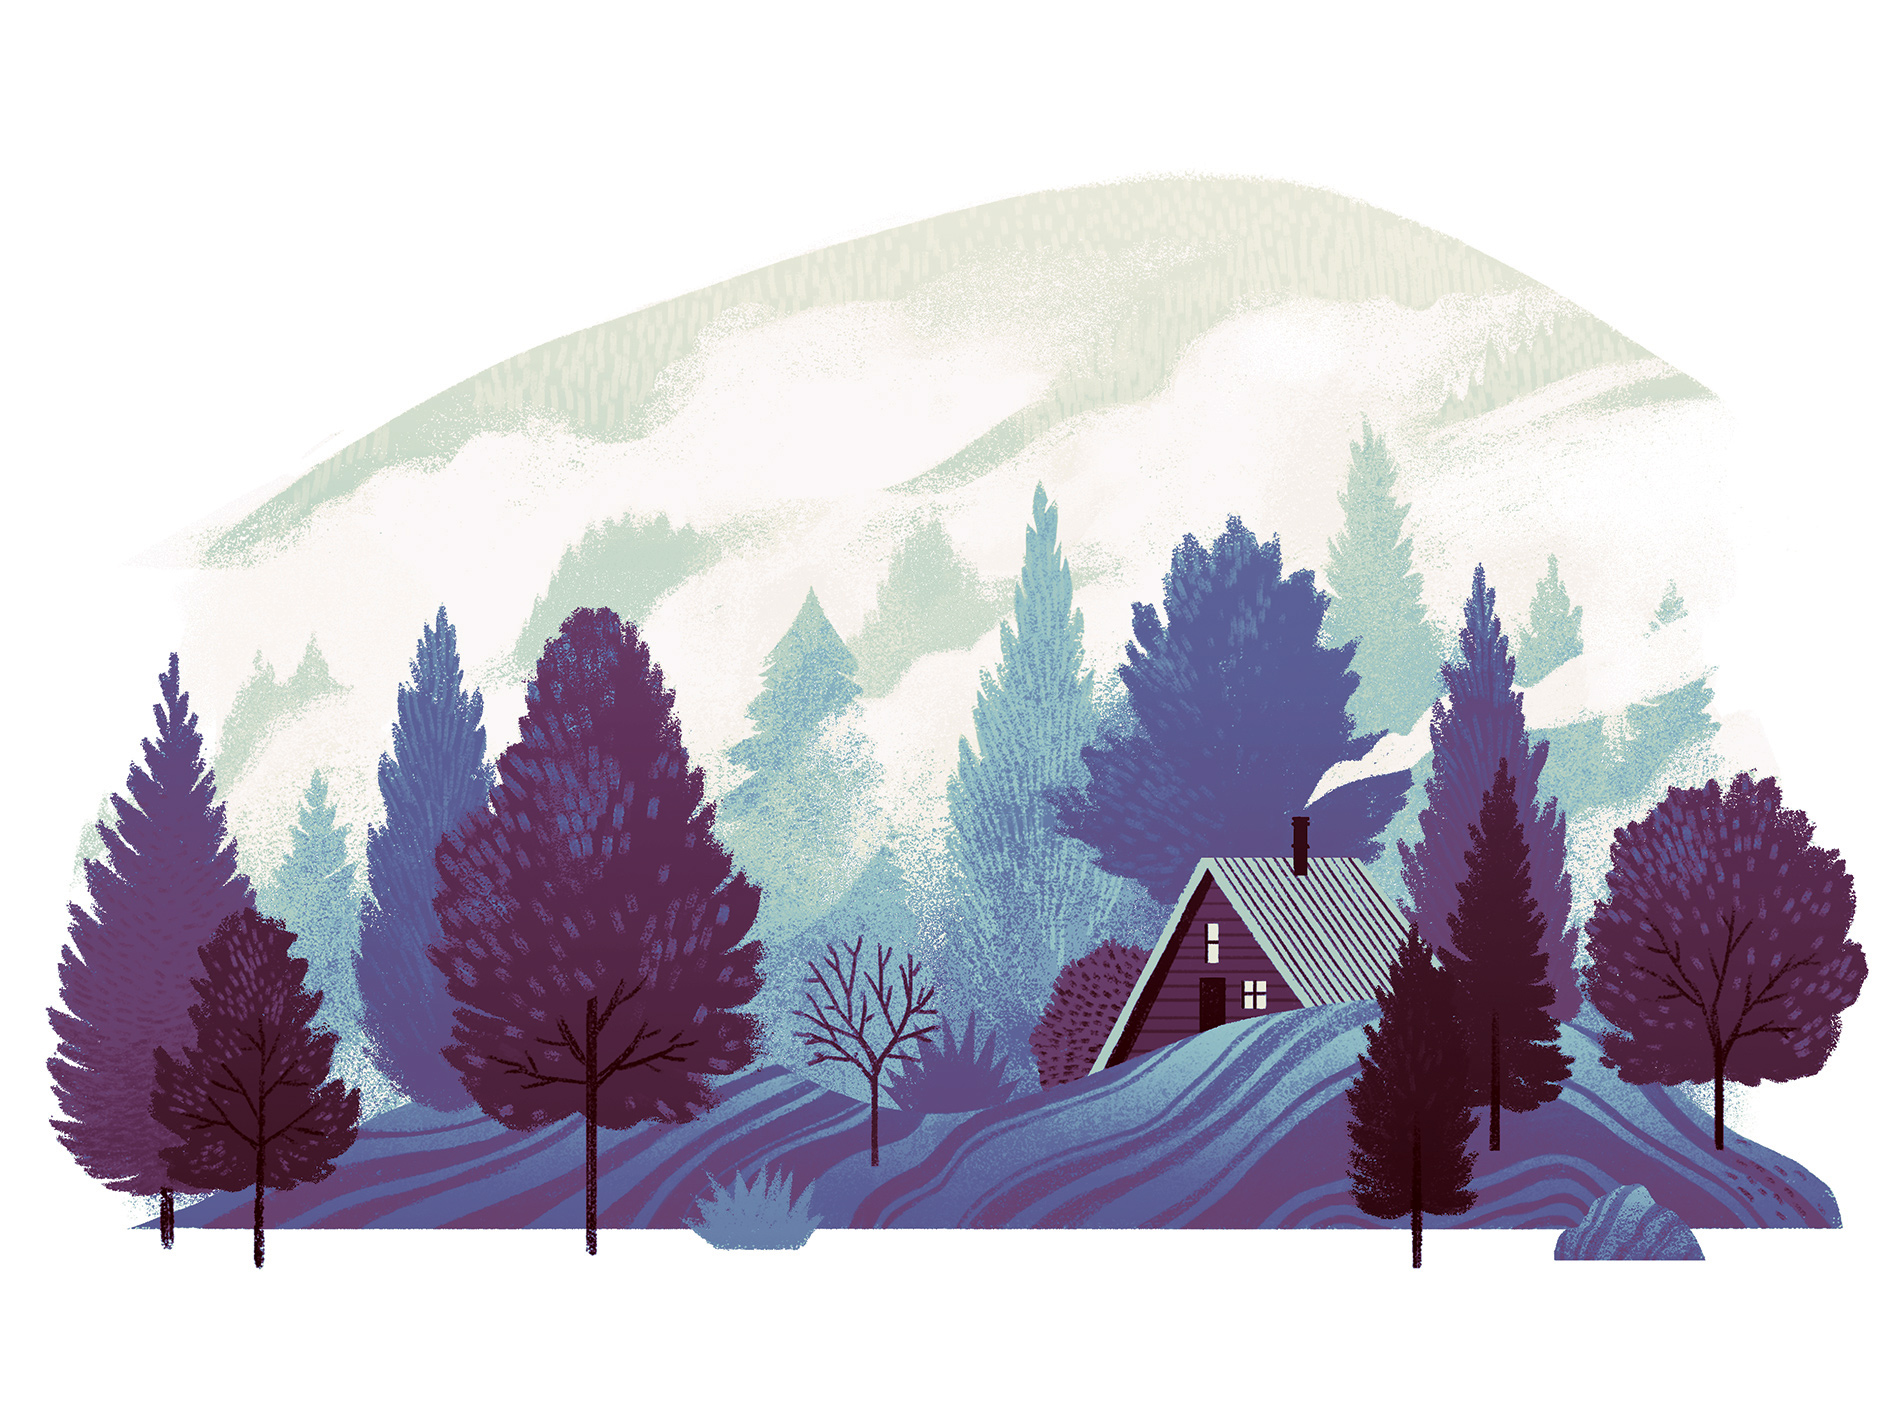 Applied-Arts-Calendar--December-Illustration--Cristian-Fowlie--Cabin-in-the-Woods.jpg